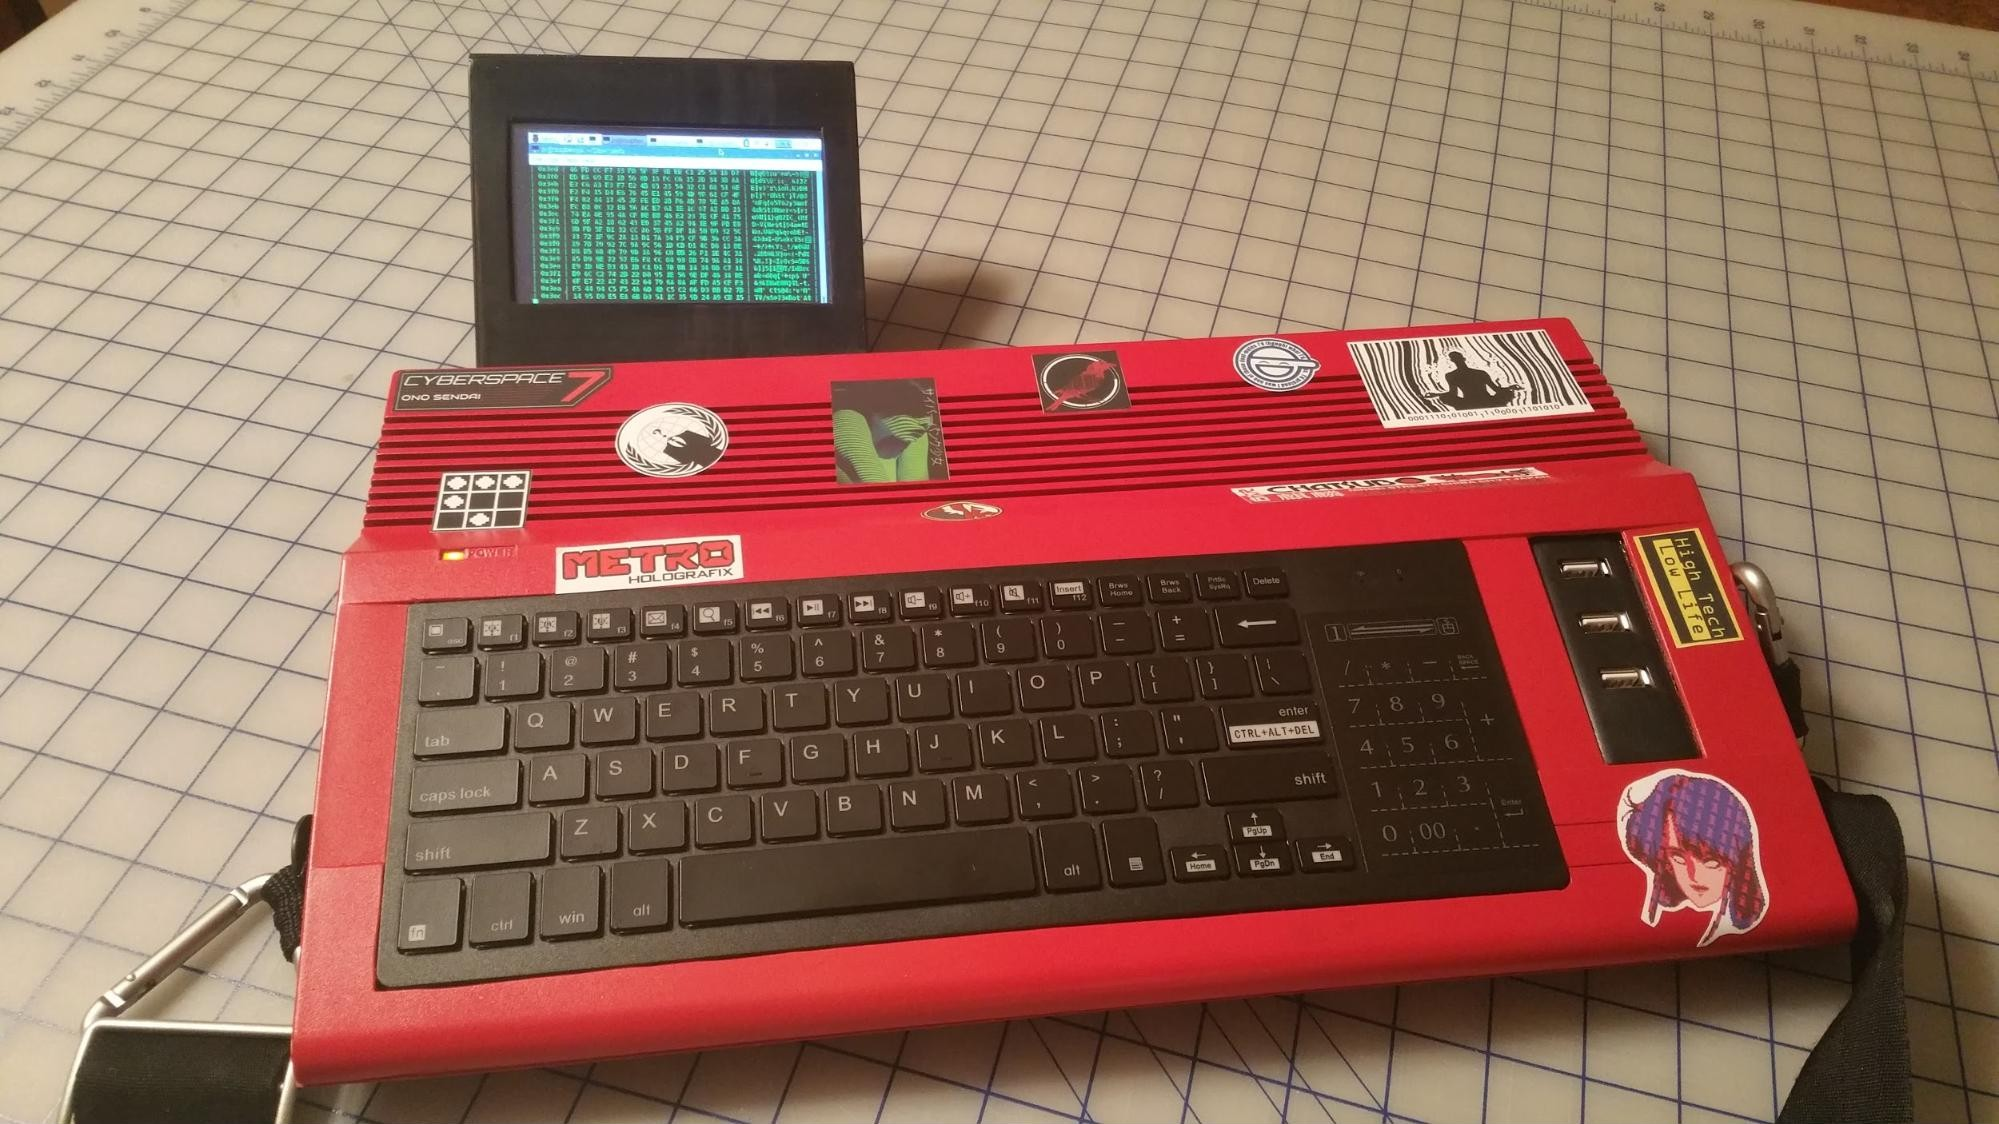 Modder Brings William Gibson's 'Cyberdecks' to Life